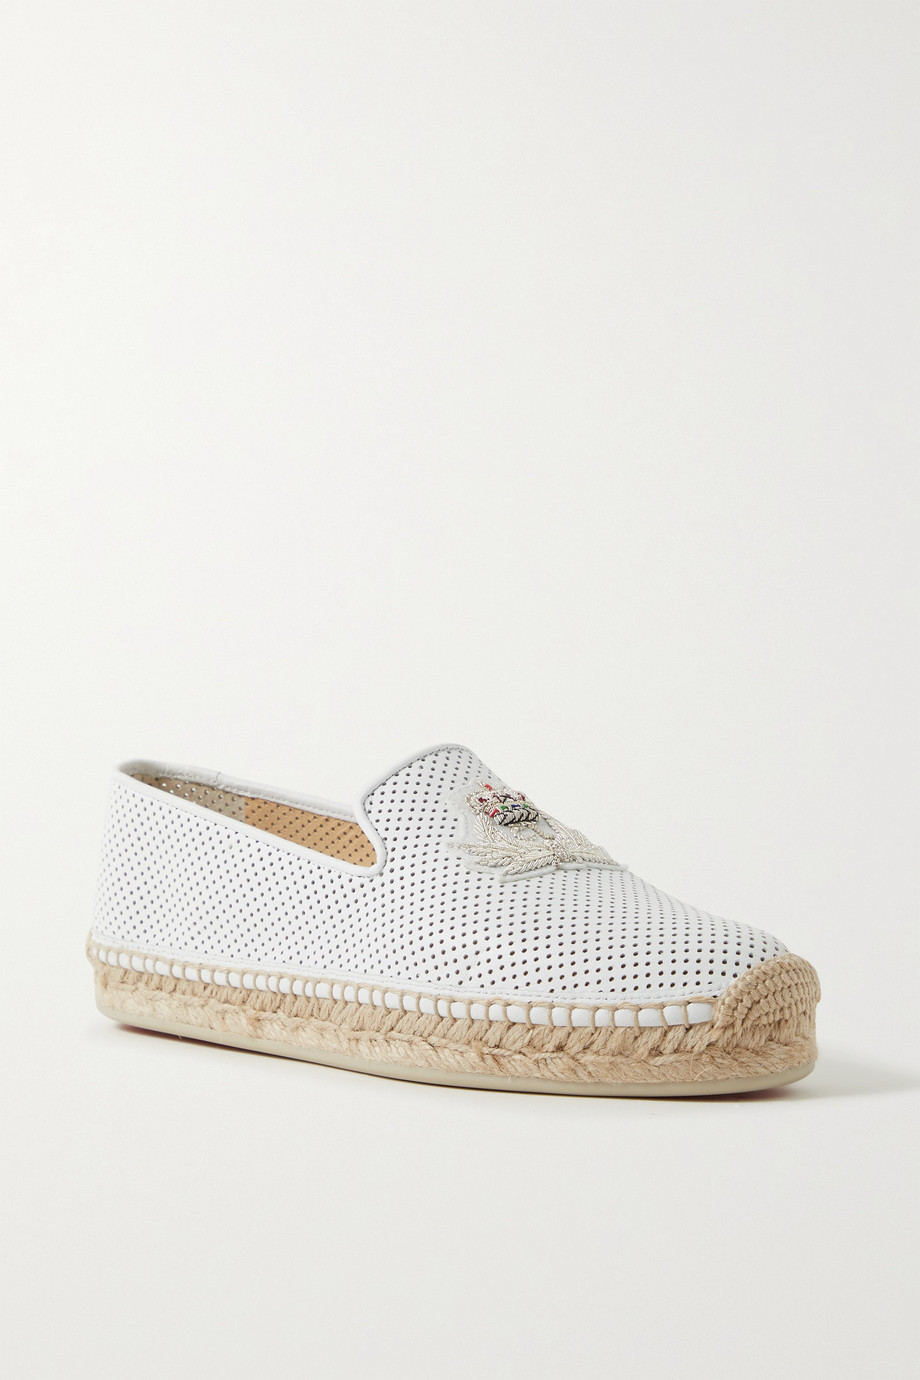 CHRISTIAN LOUBOUTIN Nanou Orlato logo-embroidered perforated leather espadrilles